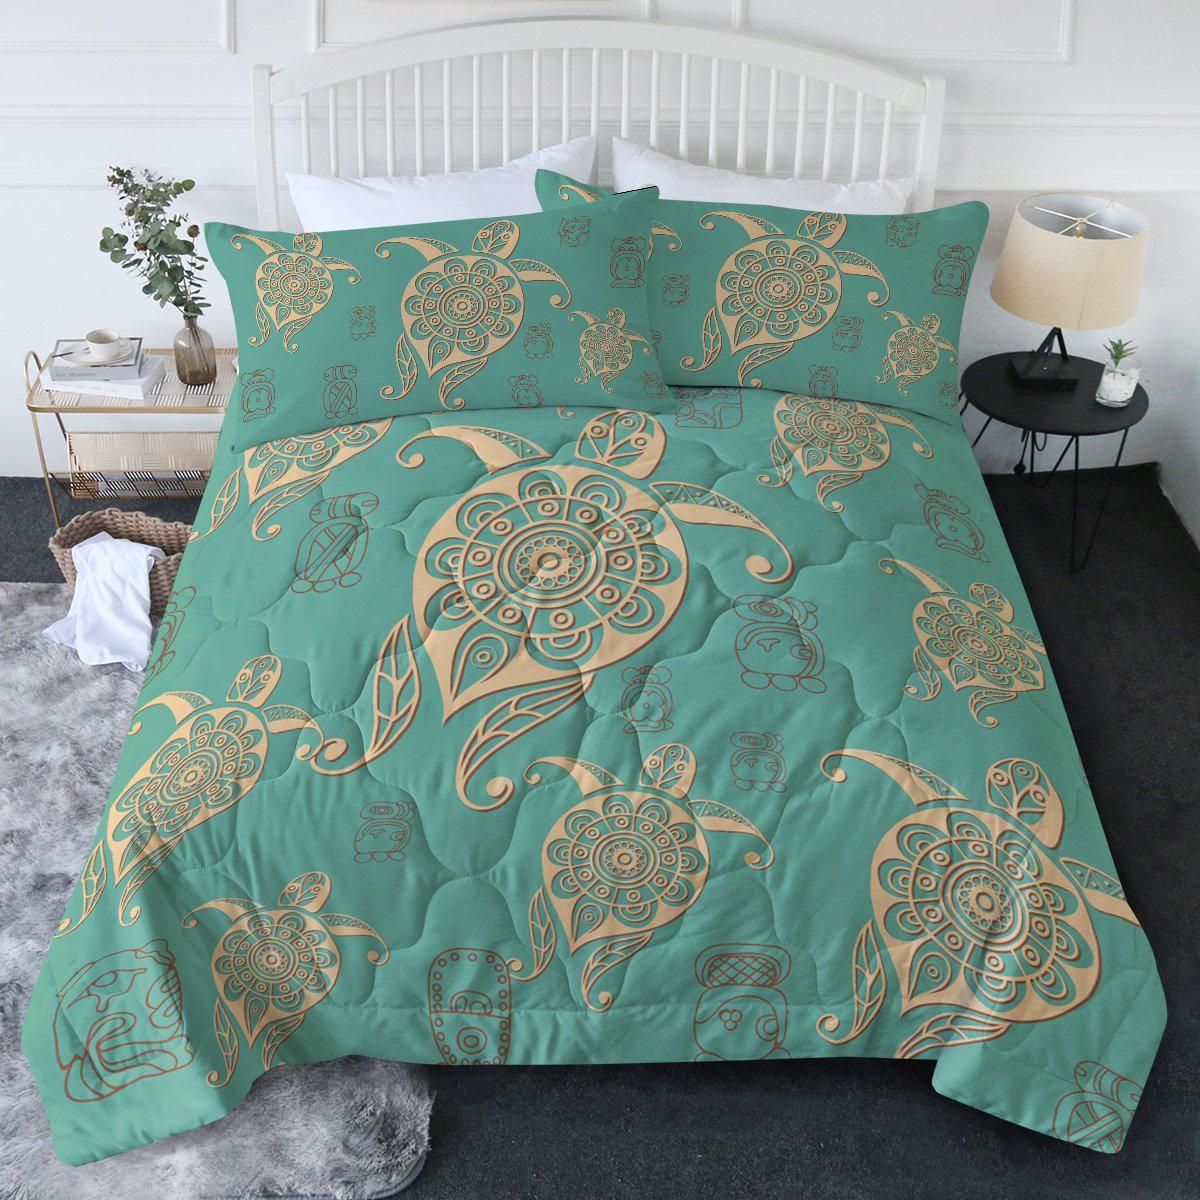 Turtles in Turquoise Comforter Set-Coastal Passion